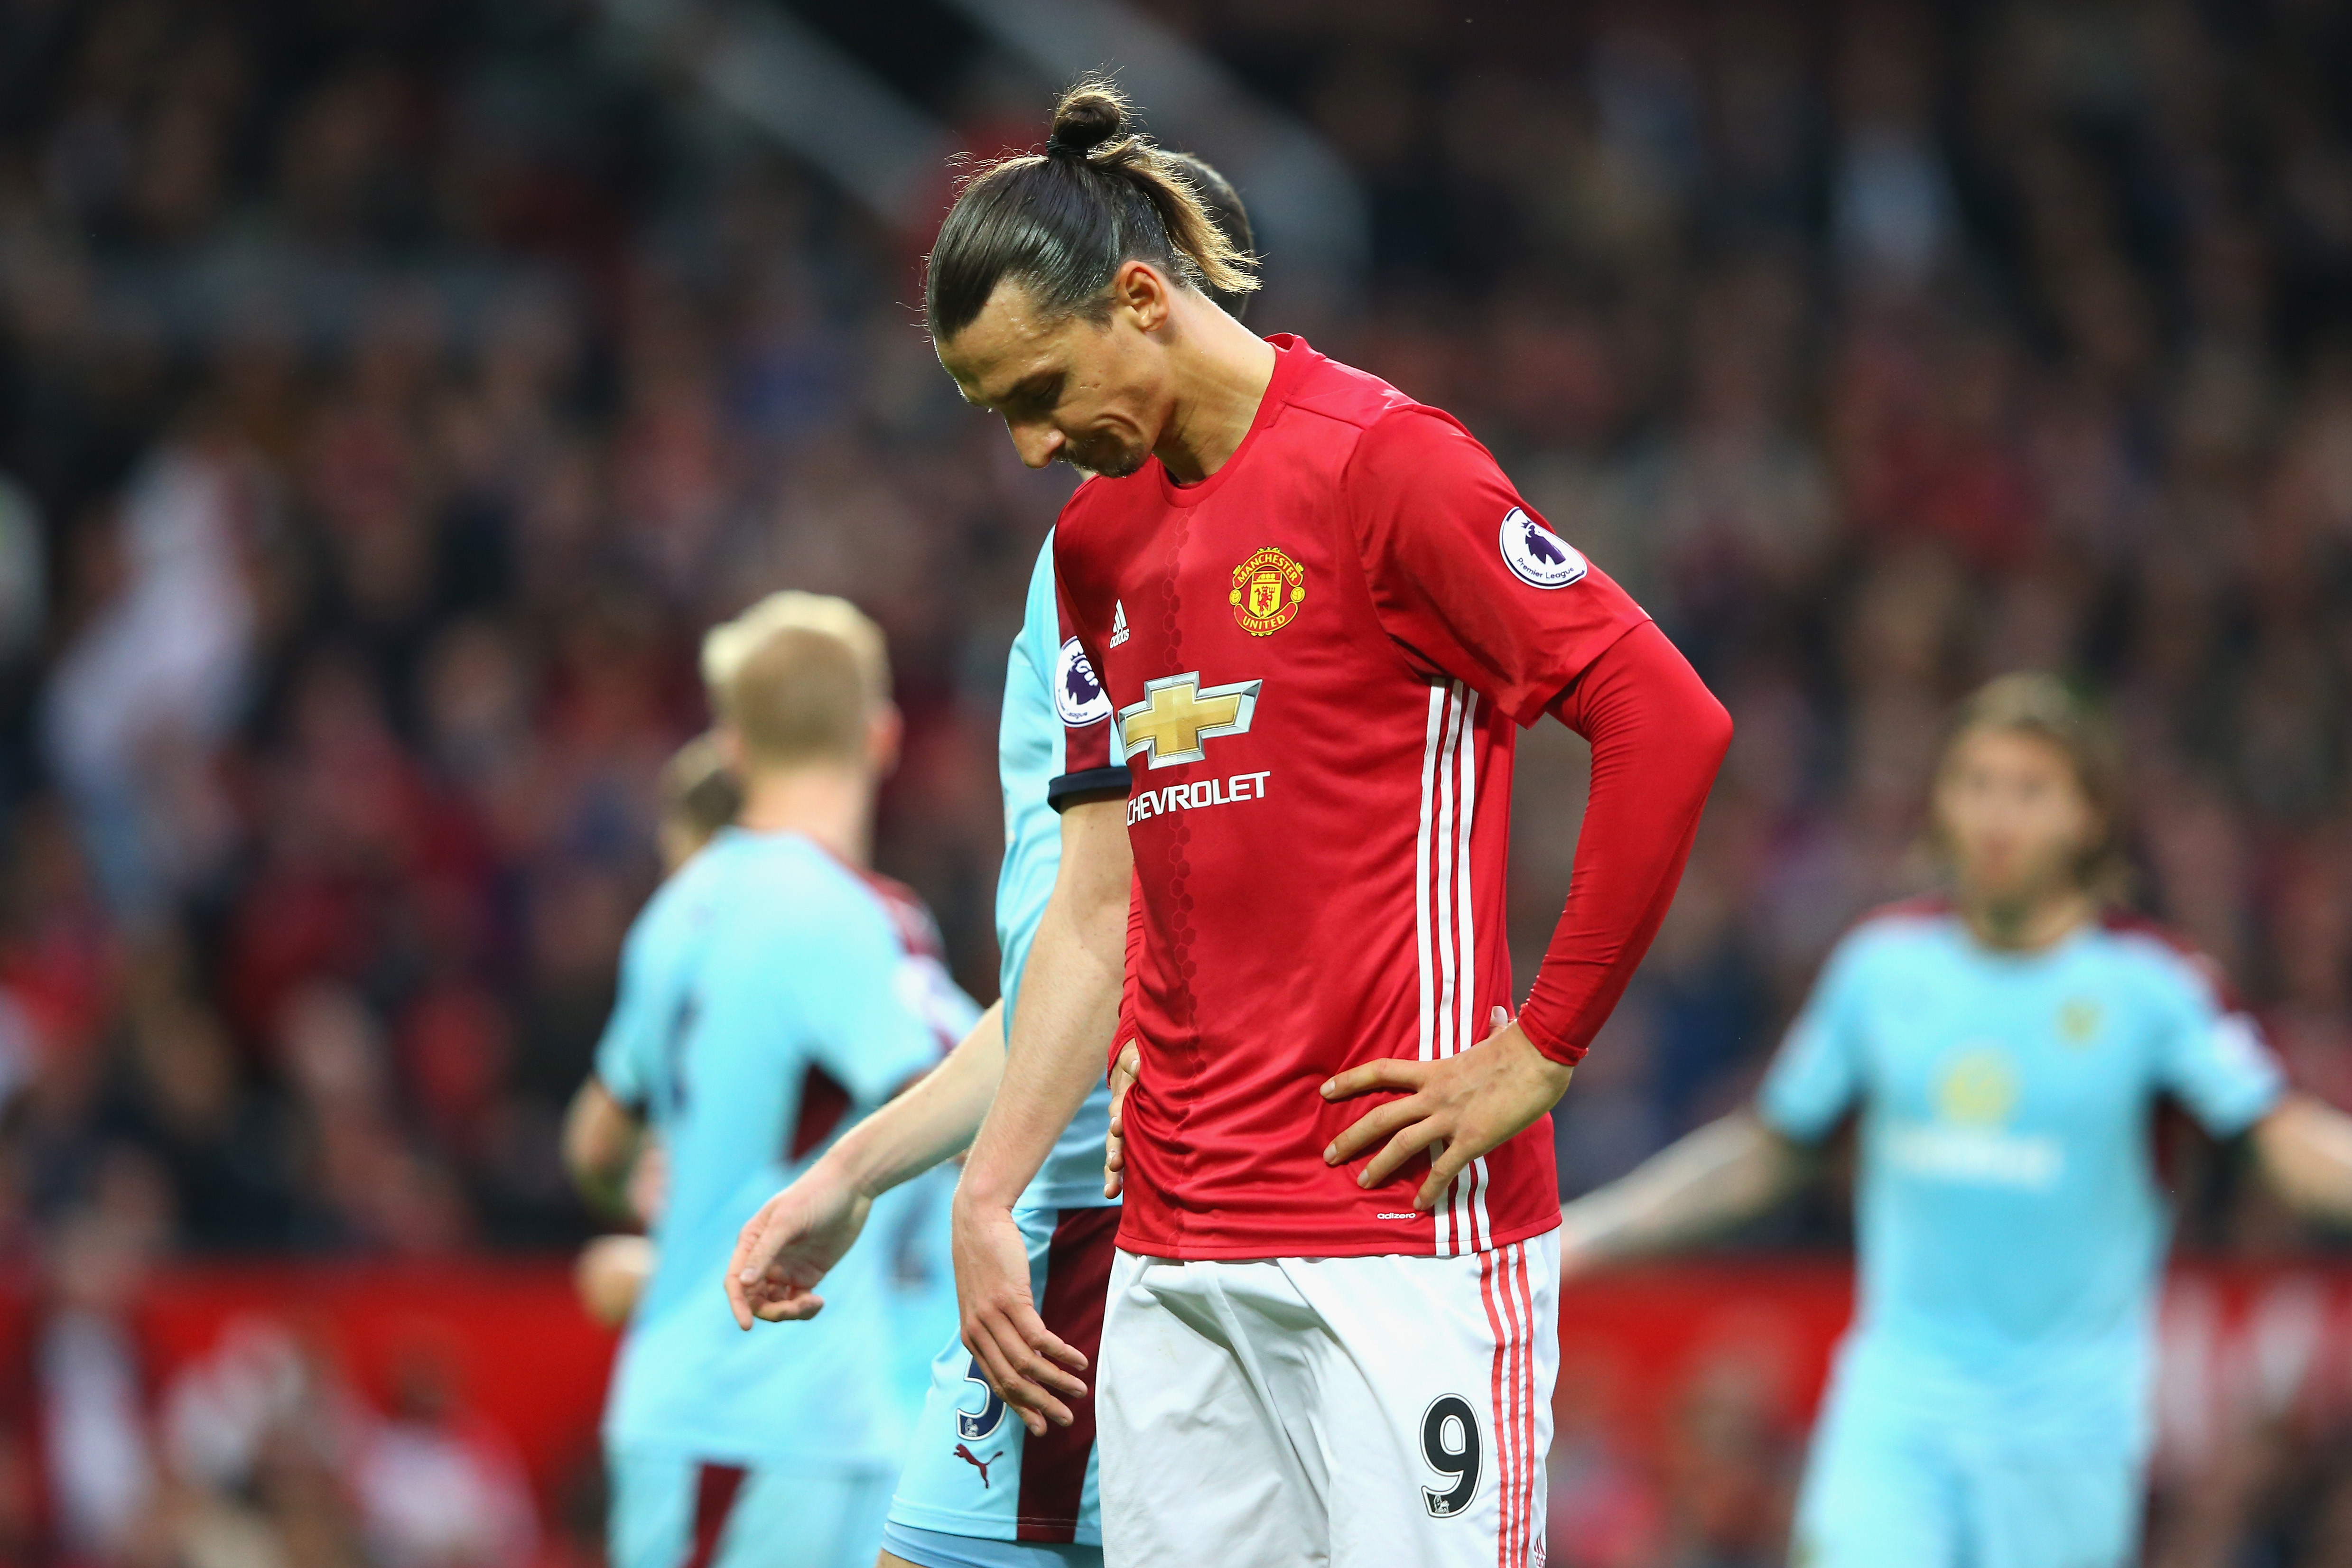 MANCHESTER, ENGLAND - OCTOBER 29: Zlatan Ibrahimovic of Manchester United reacts during the Premier League match between Manchester United and Burnley at Old Trafford on October 29, 2016 in Manchester, England. (Photo by Alex Livesey/Getty Images)